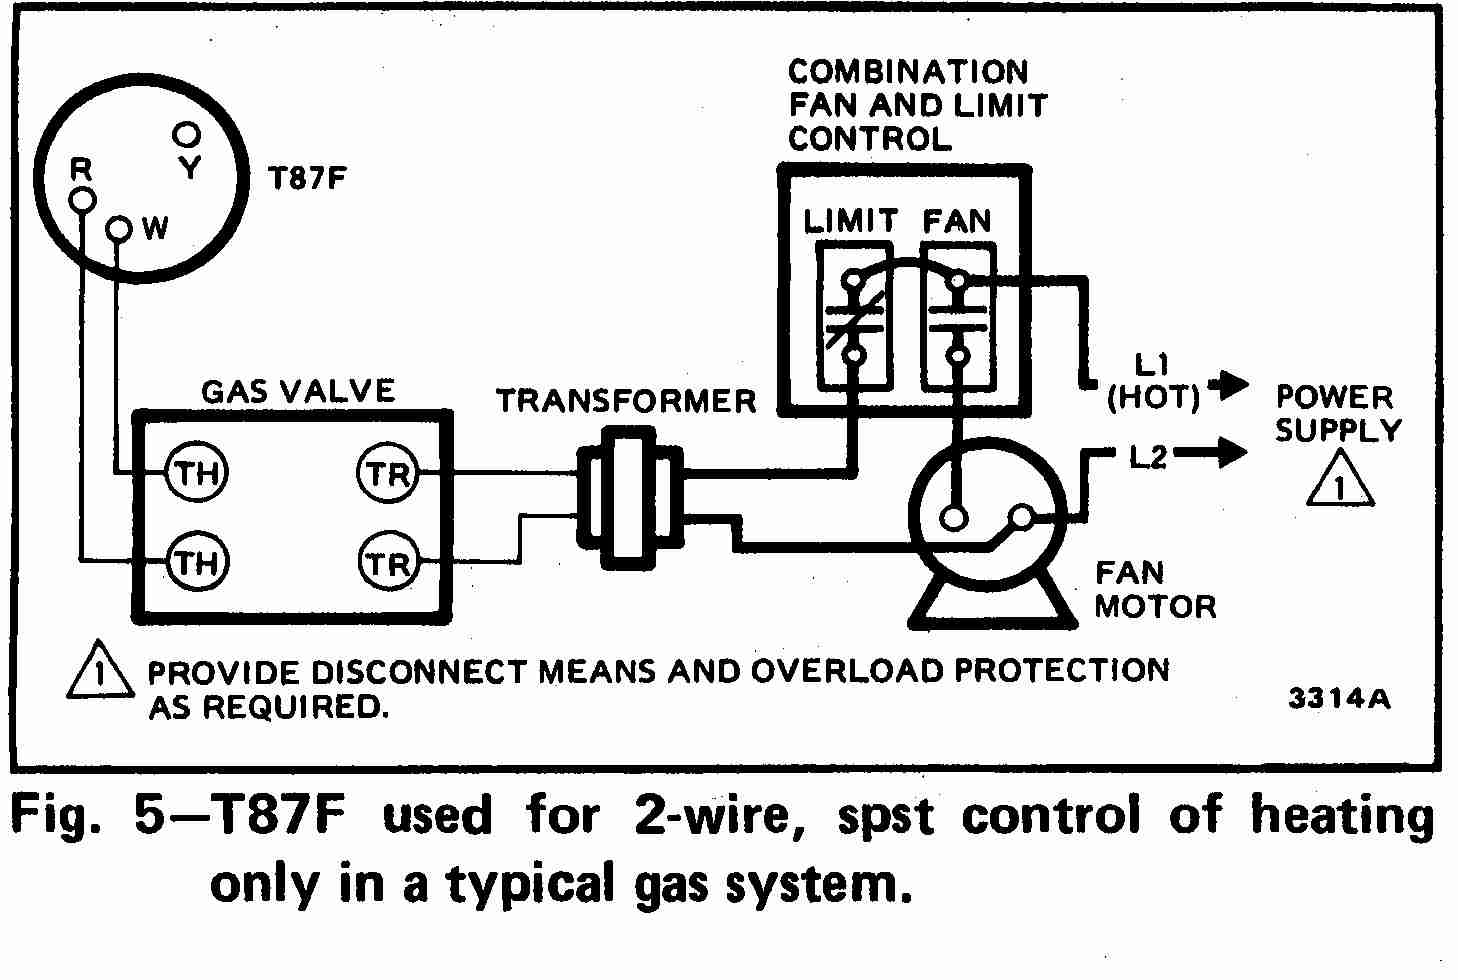 Basic Wiring For Gas Furnace | Wiring Diagram on